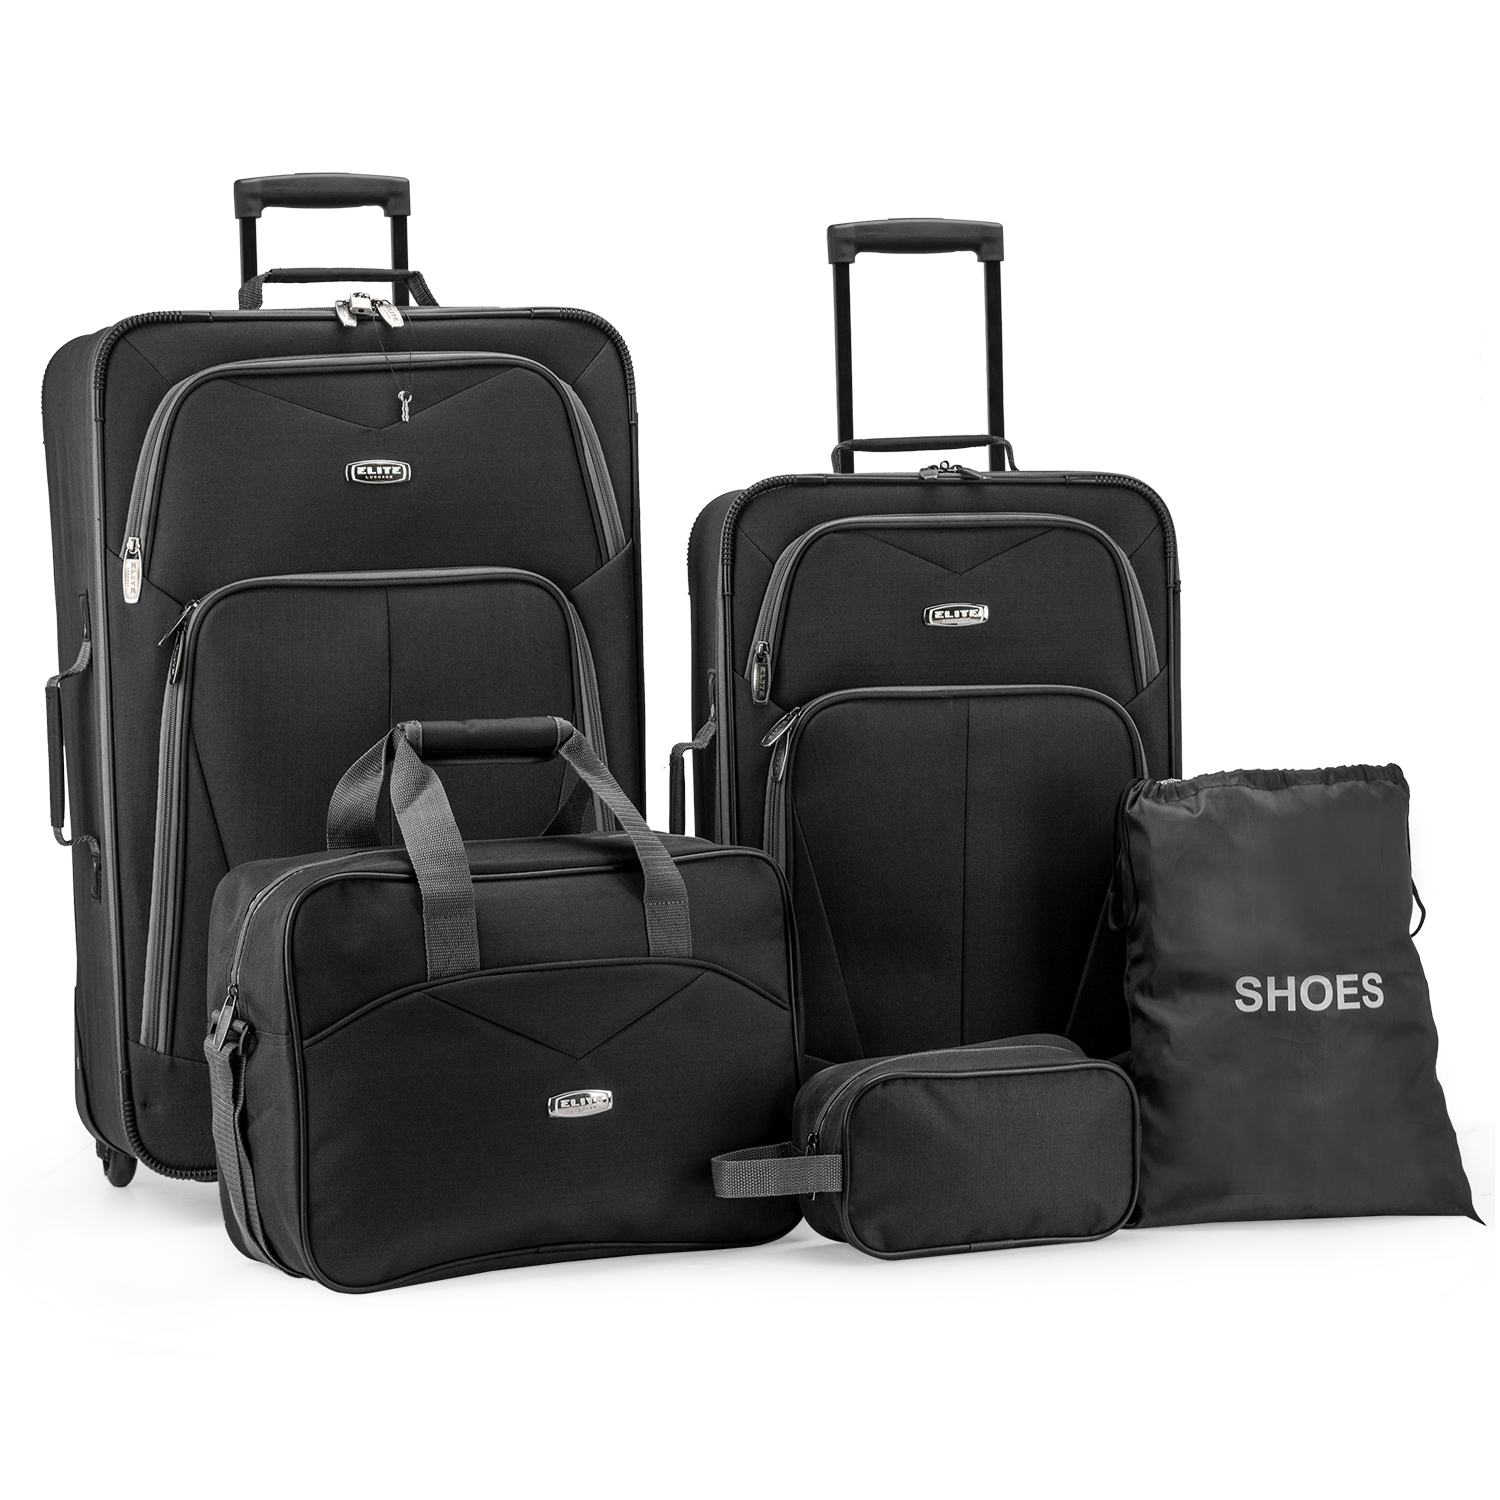 Elite Luggage Whitfield 5-Piece Softside Lightweight Rolling Luggage Set, Black